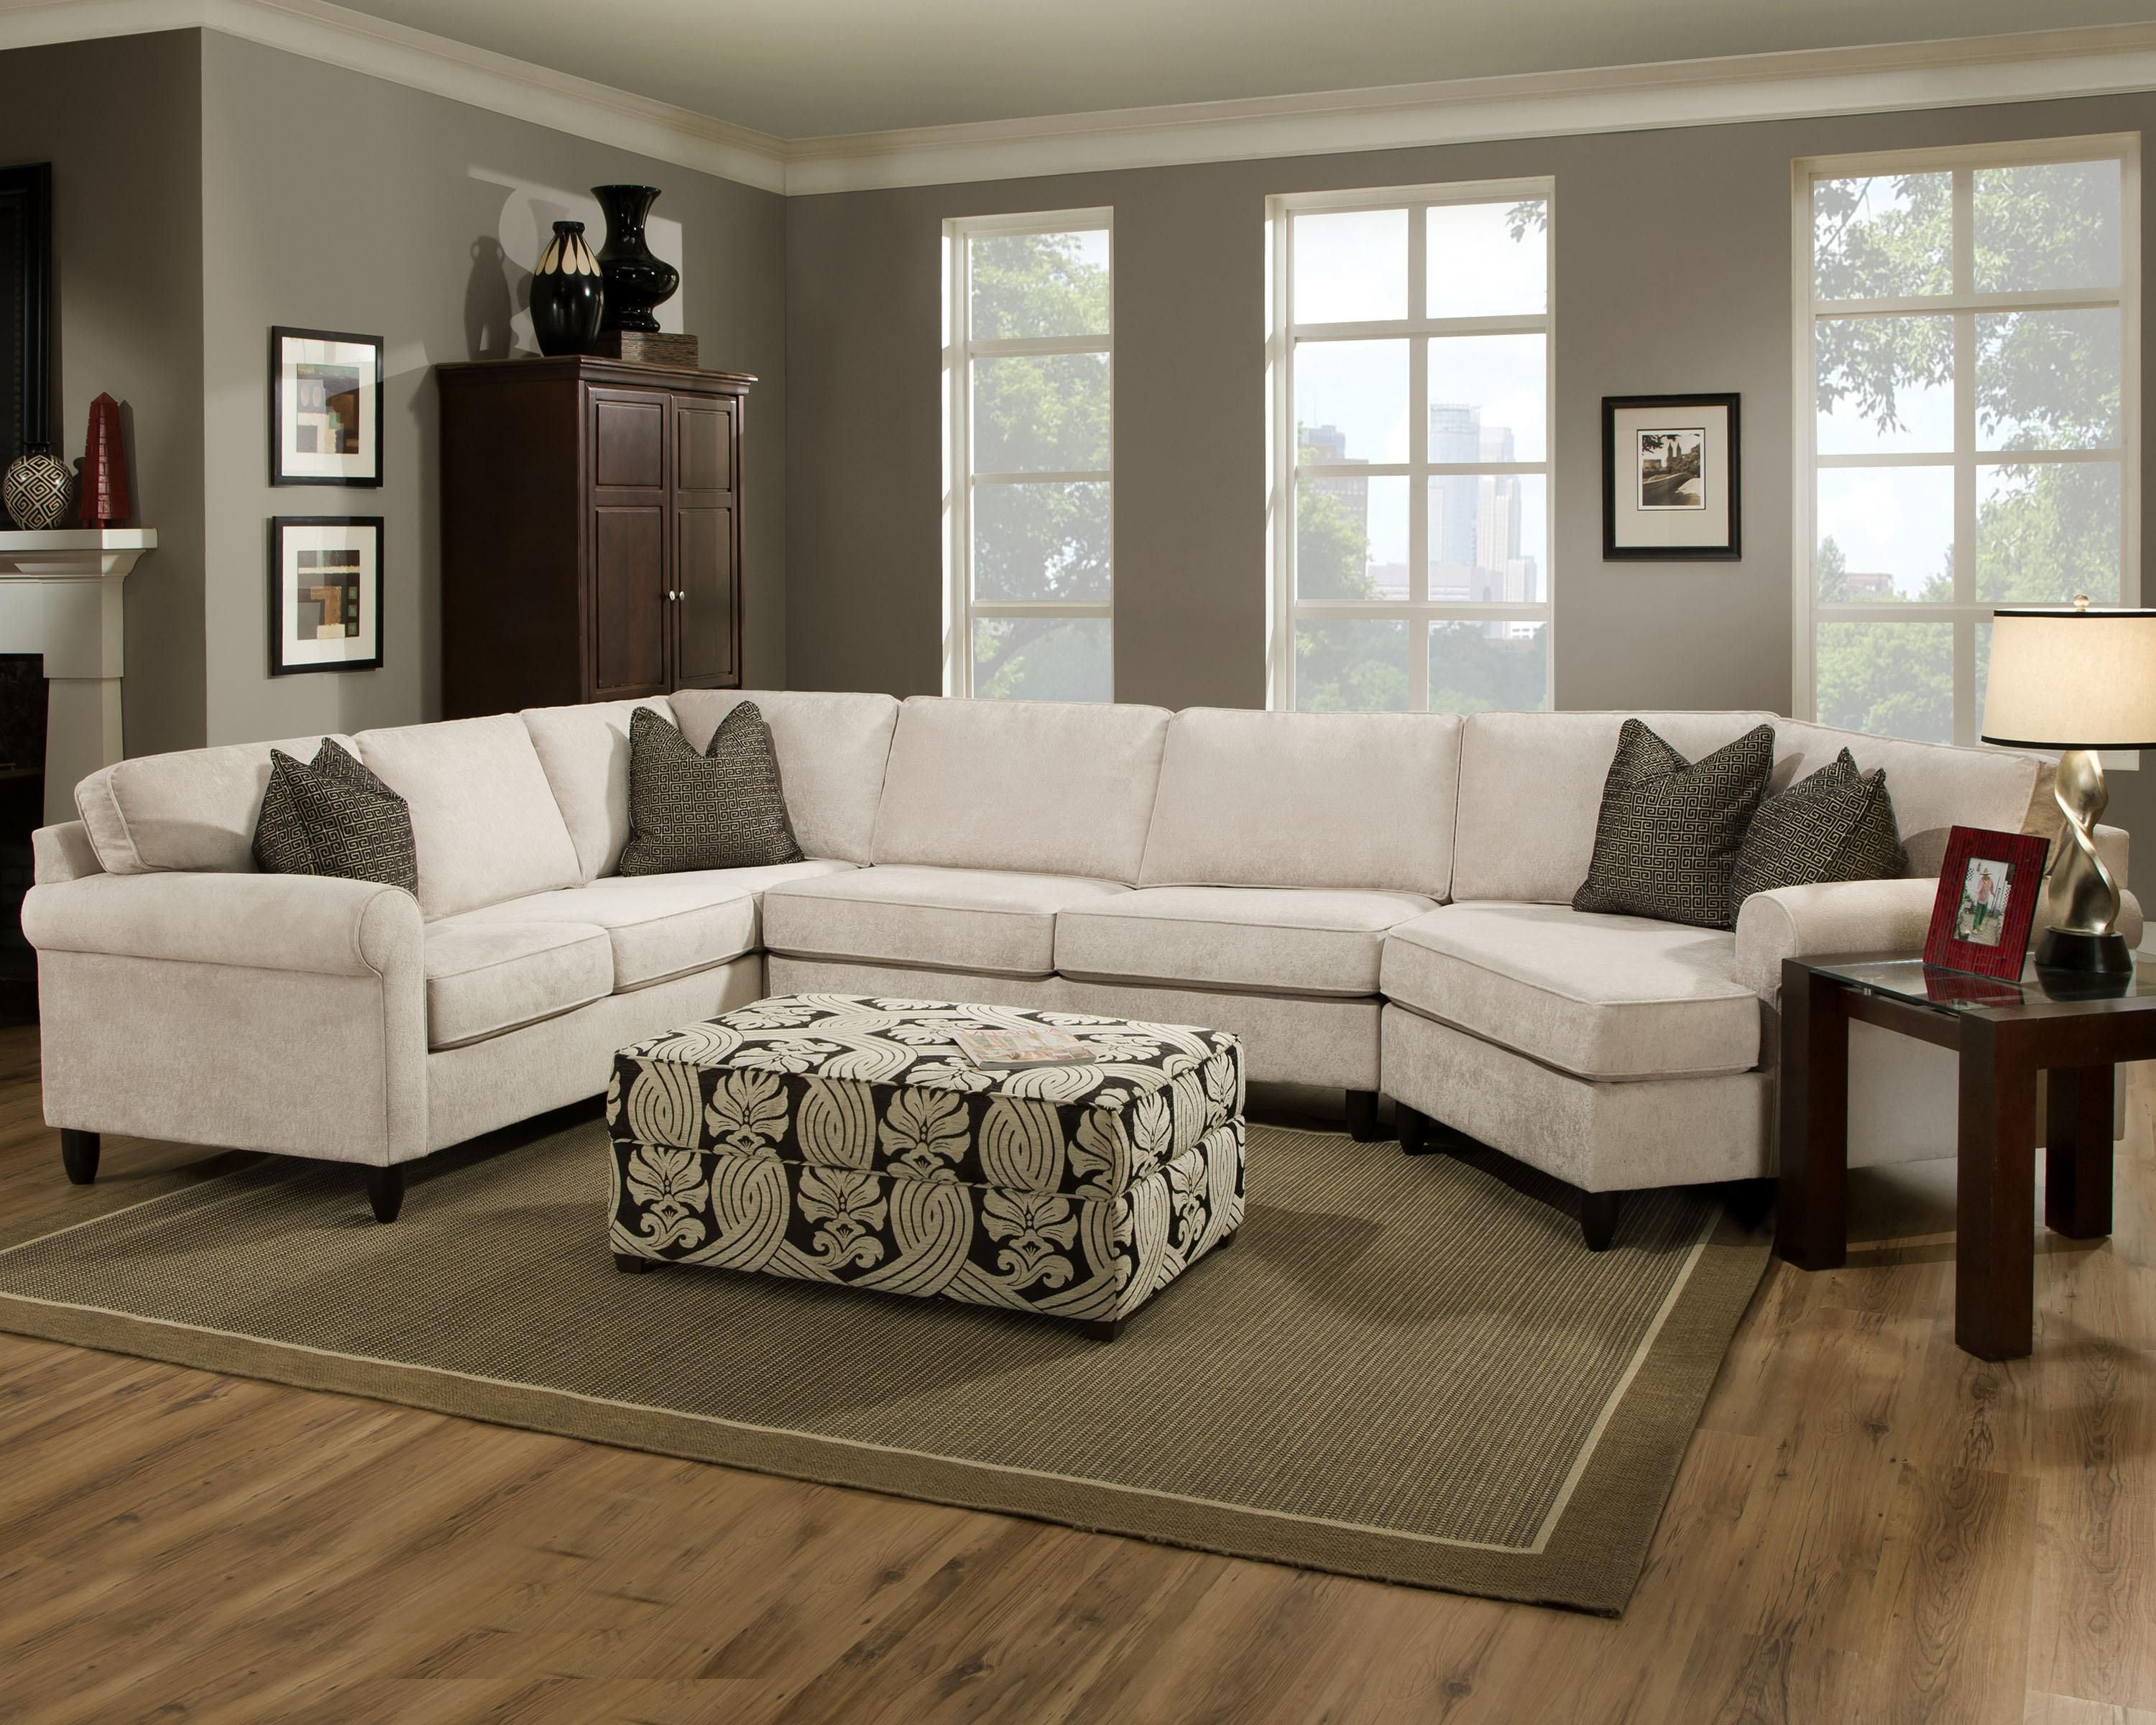 Fray Casual Sectional With Rolled Sock Arms By Bauhaus At Ahfa Sectional Sofa Living Room Sectional Sectional Sofa Couch #soletren #ash #living #room #set